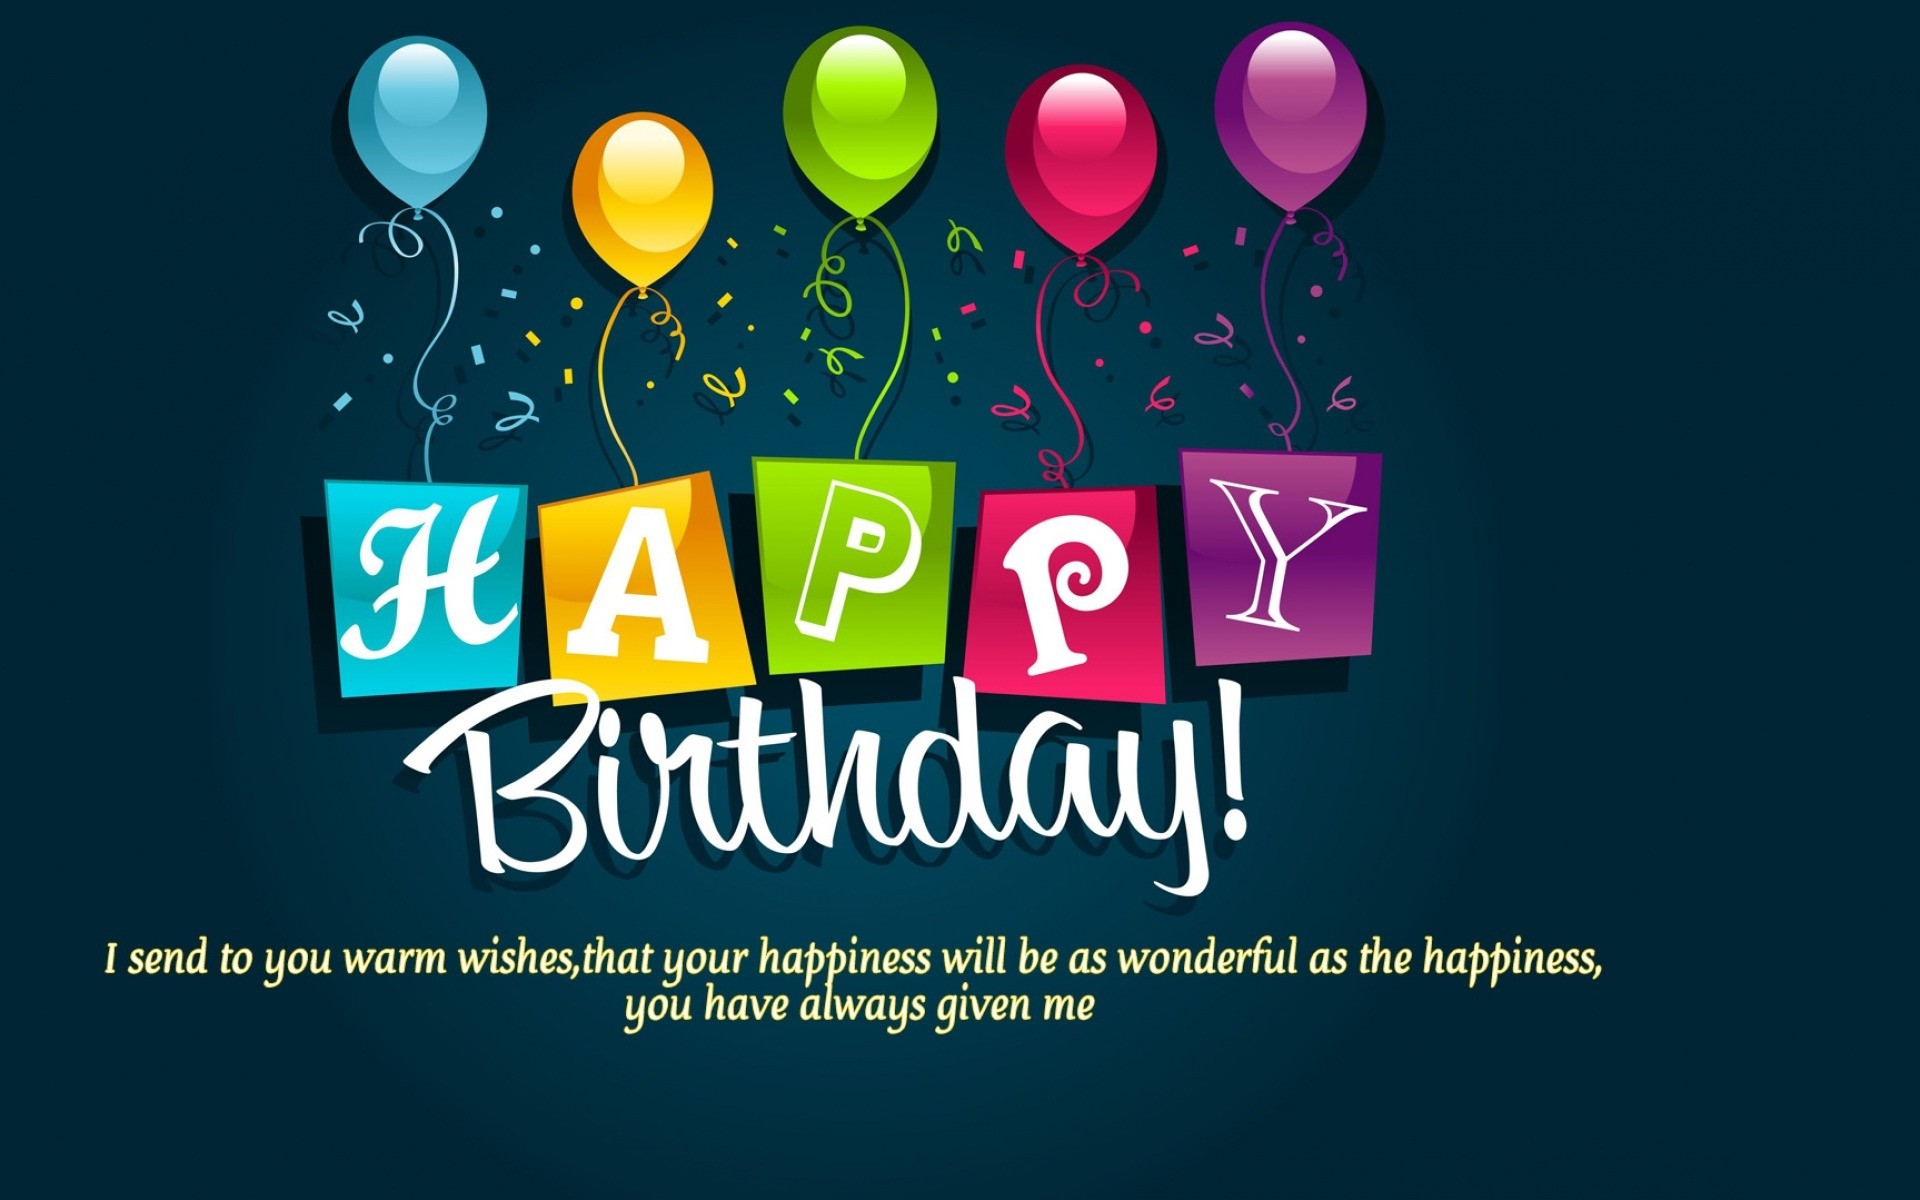 Happy Birthday Wallpaper Funny (54+ images)